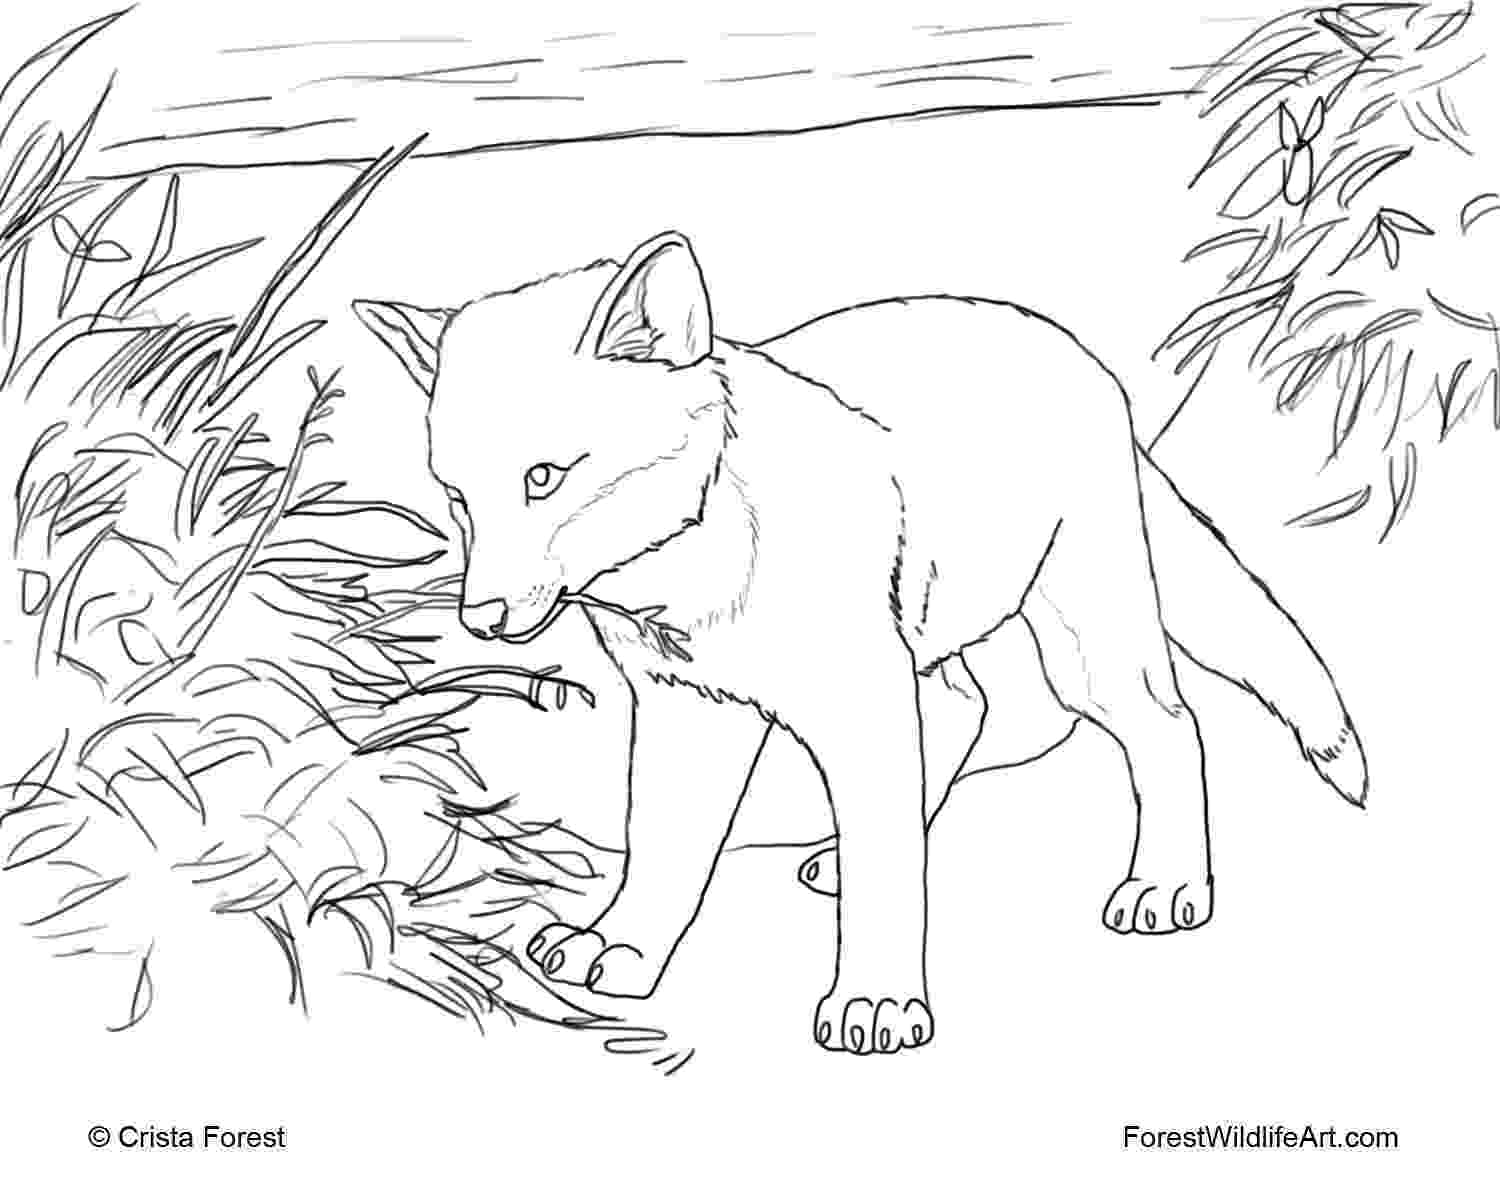 red fox coloring page fox coloring pages getcoloringpagescom page red fox coloring